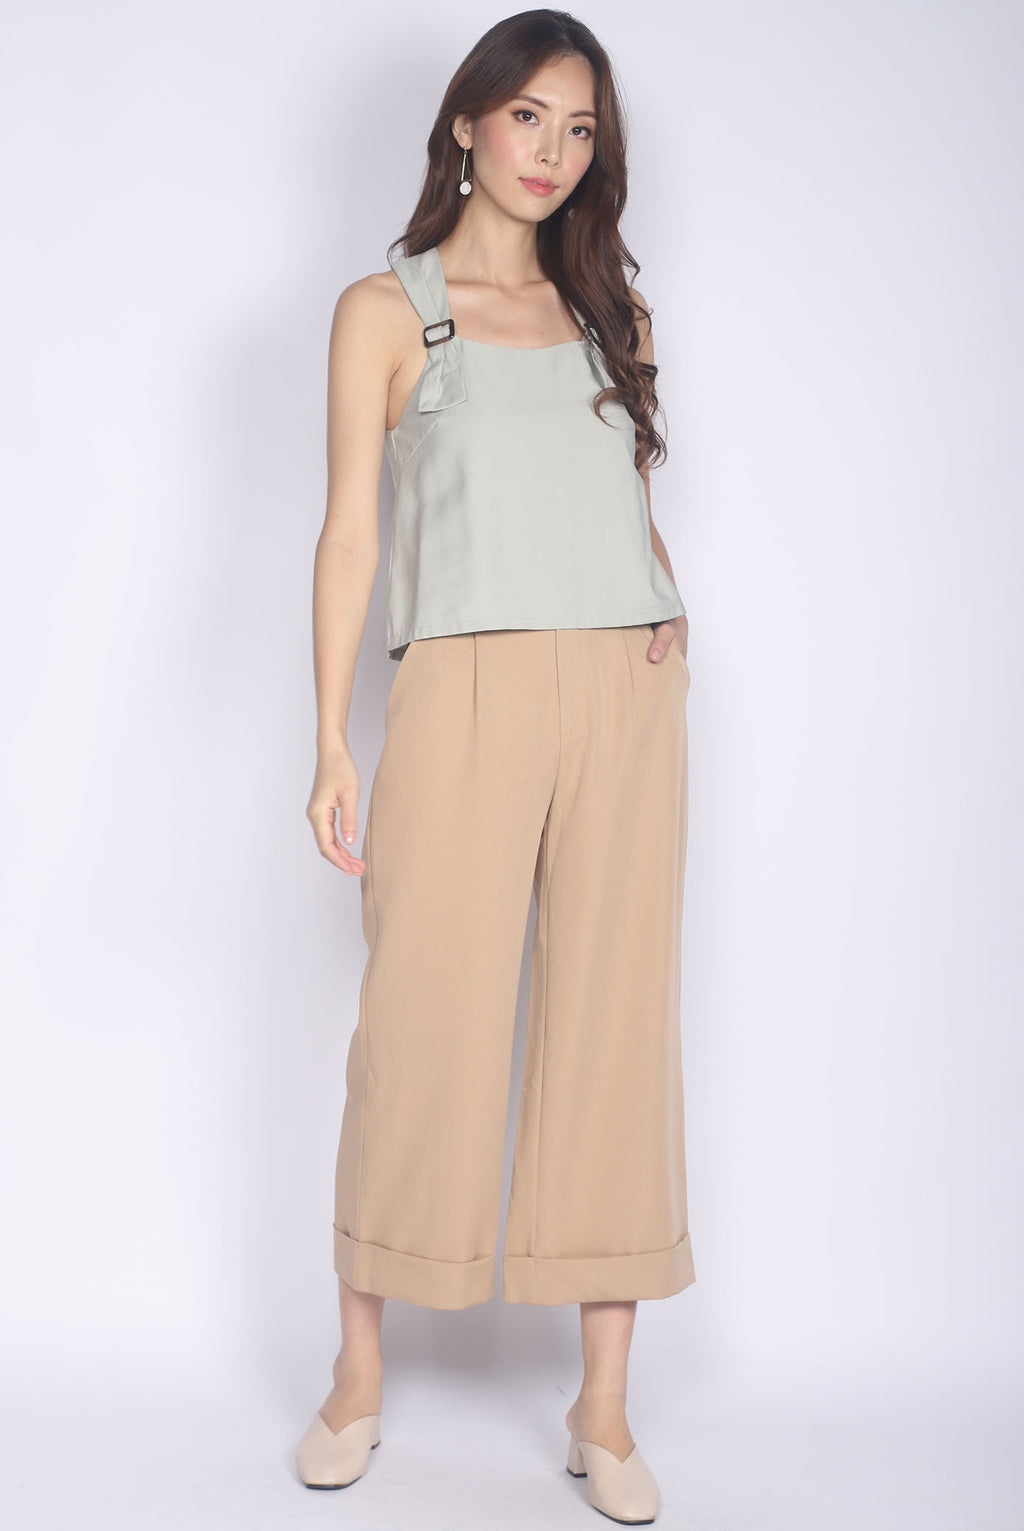 Benicia Buckle Strap Top In Sage